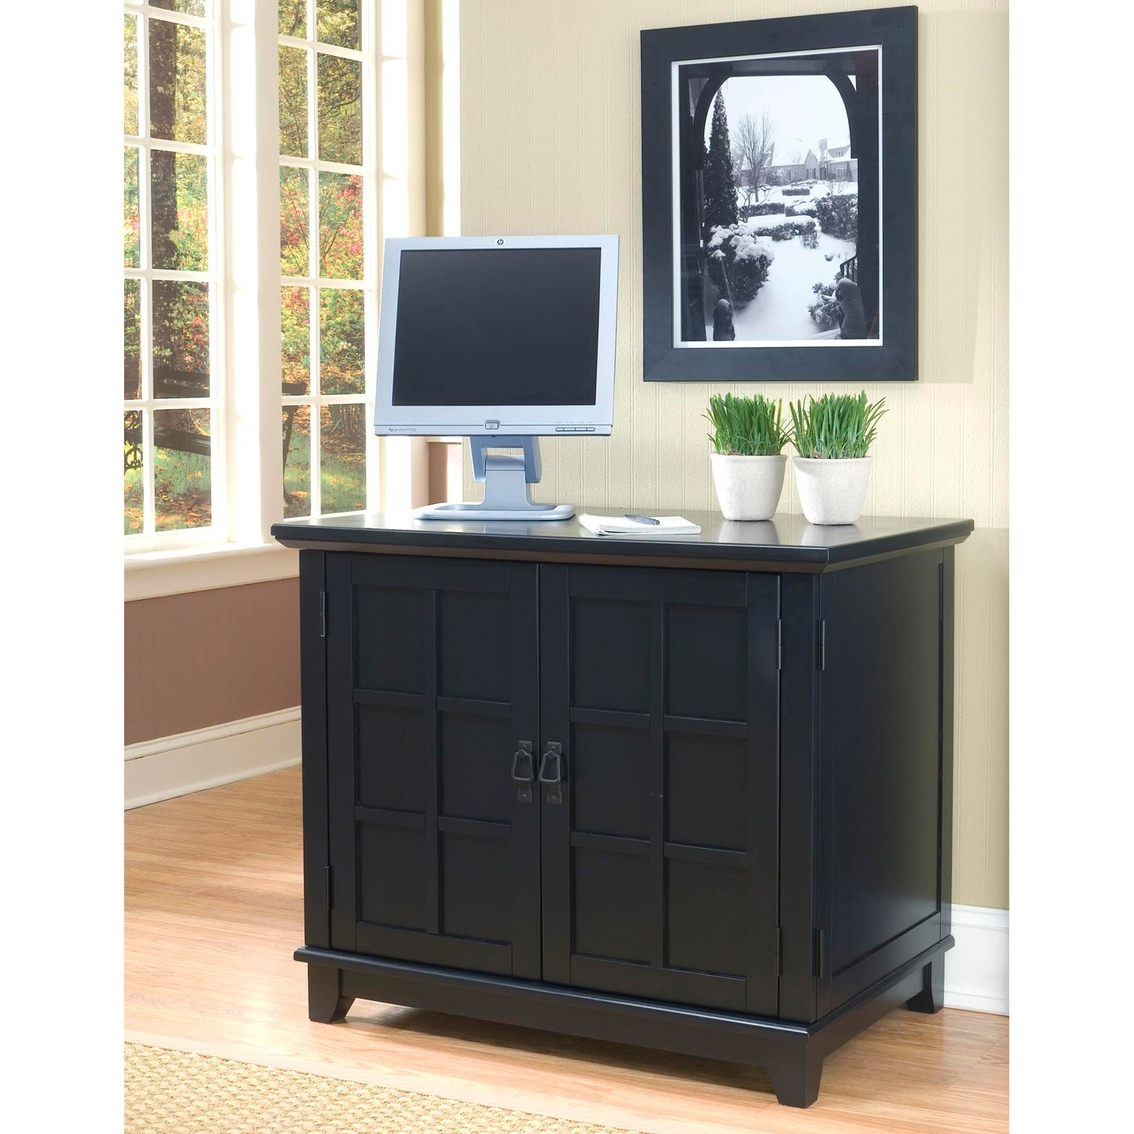 Home Styles Arts And Crafts Compact Computer Cabinet